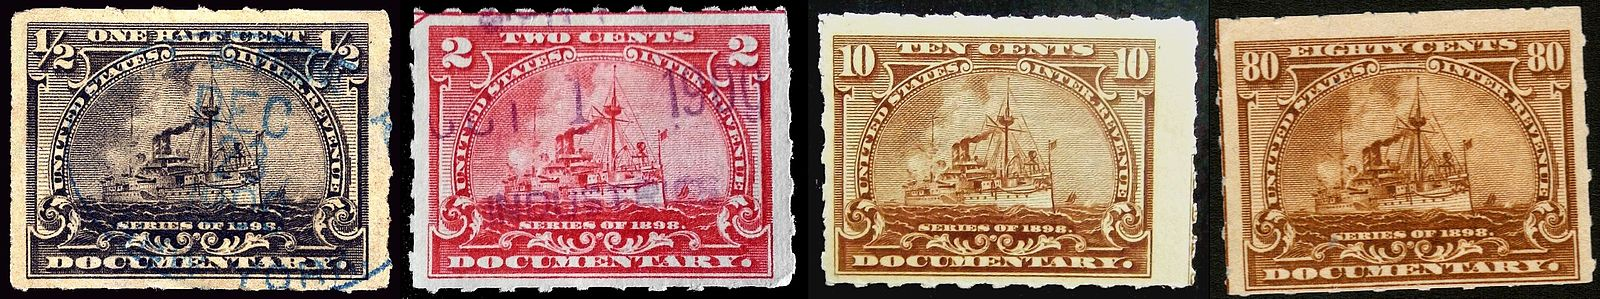 Selection Of US Documentary Revenue Stamps 1898Stamps Depict The Image USS Maine